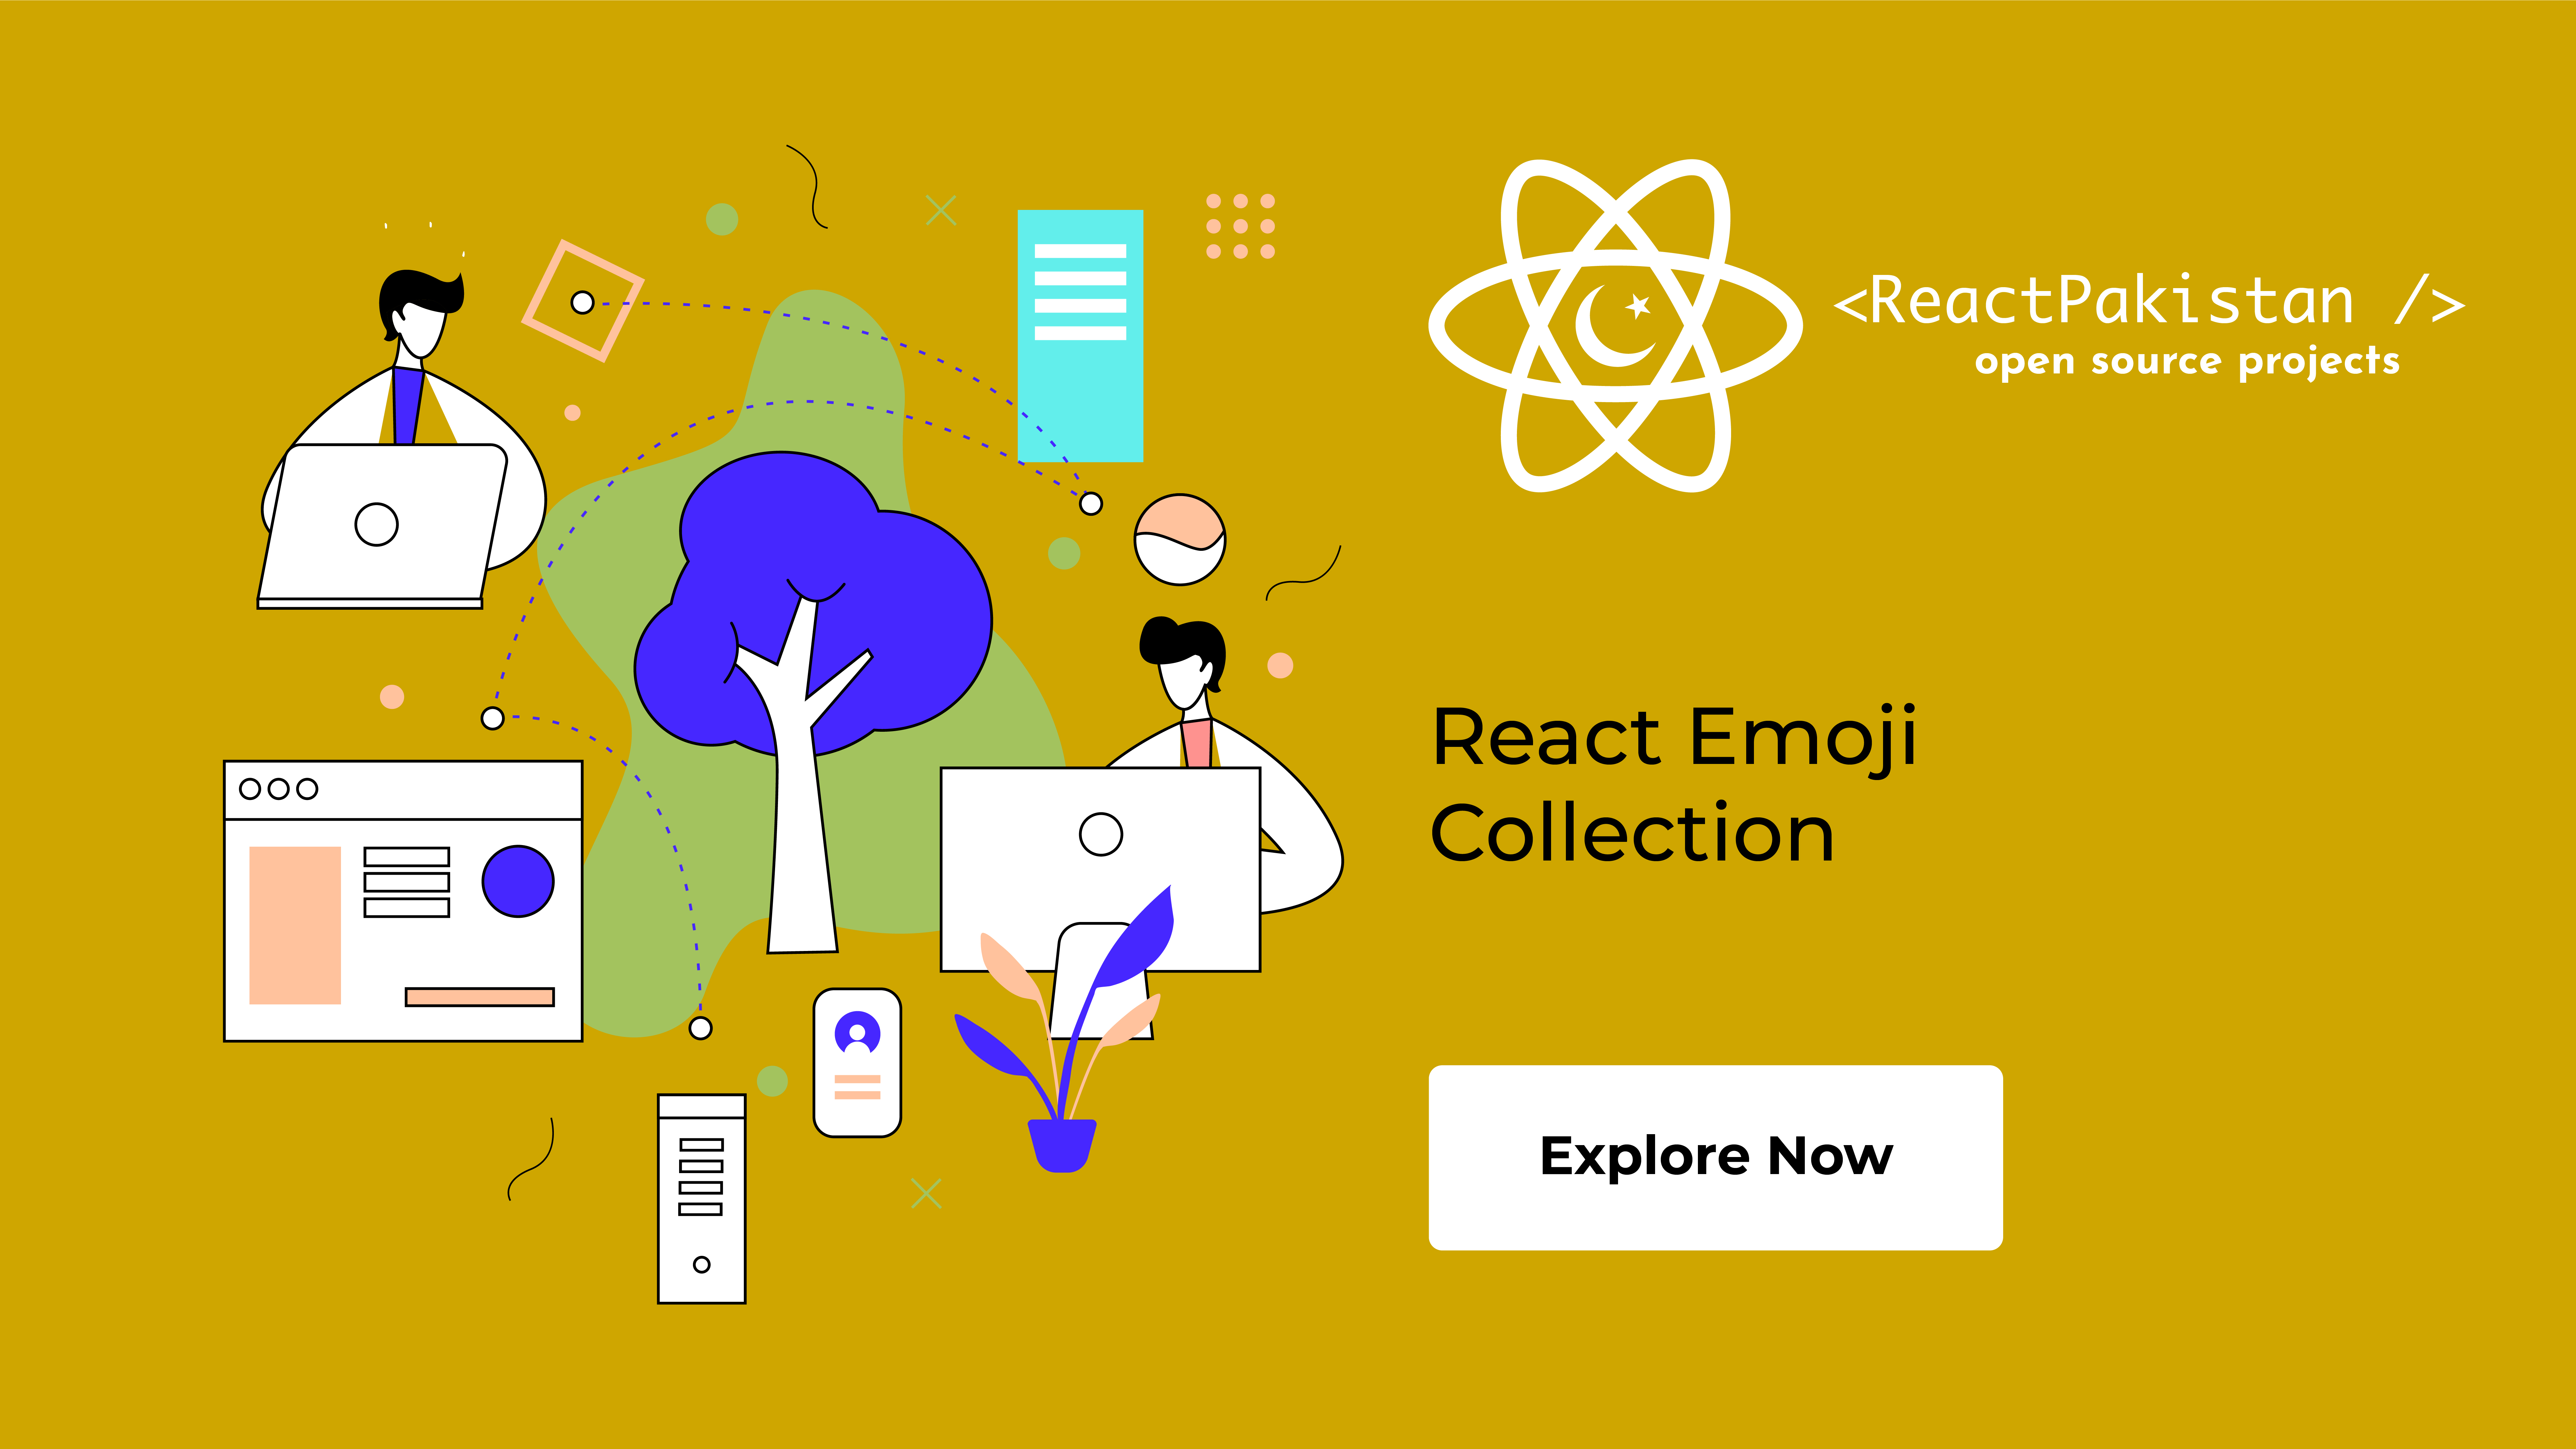 React Pakistan - React Emoji Collection